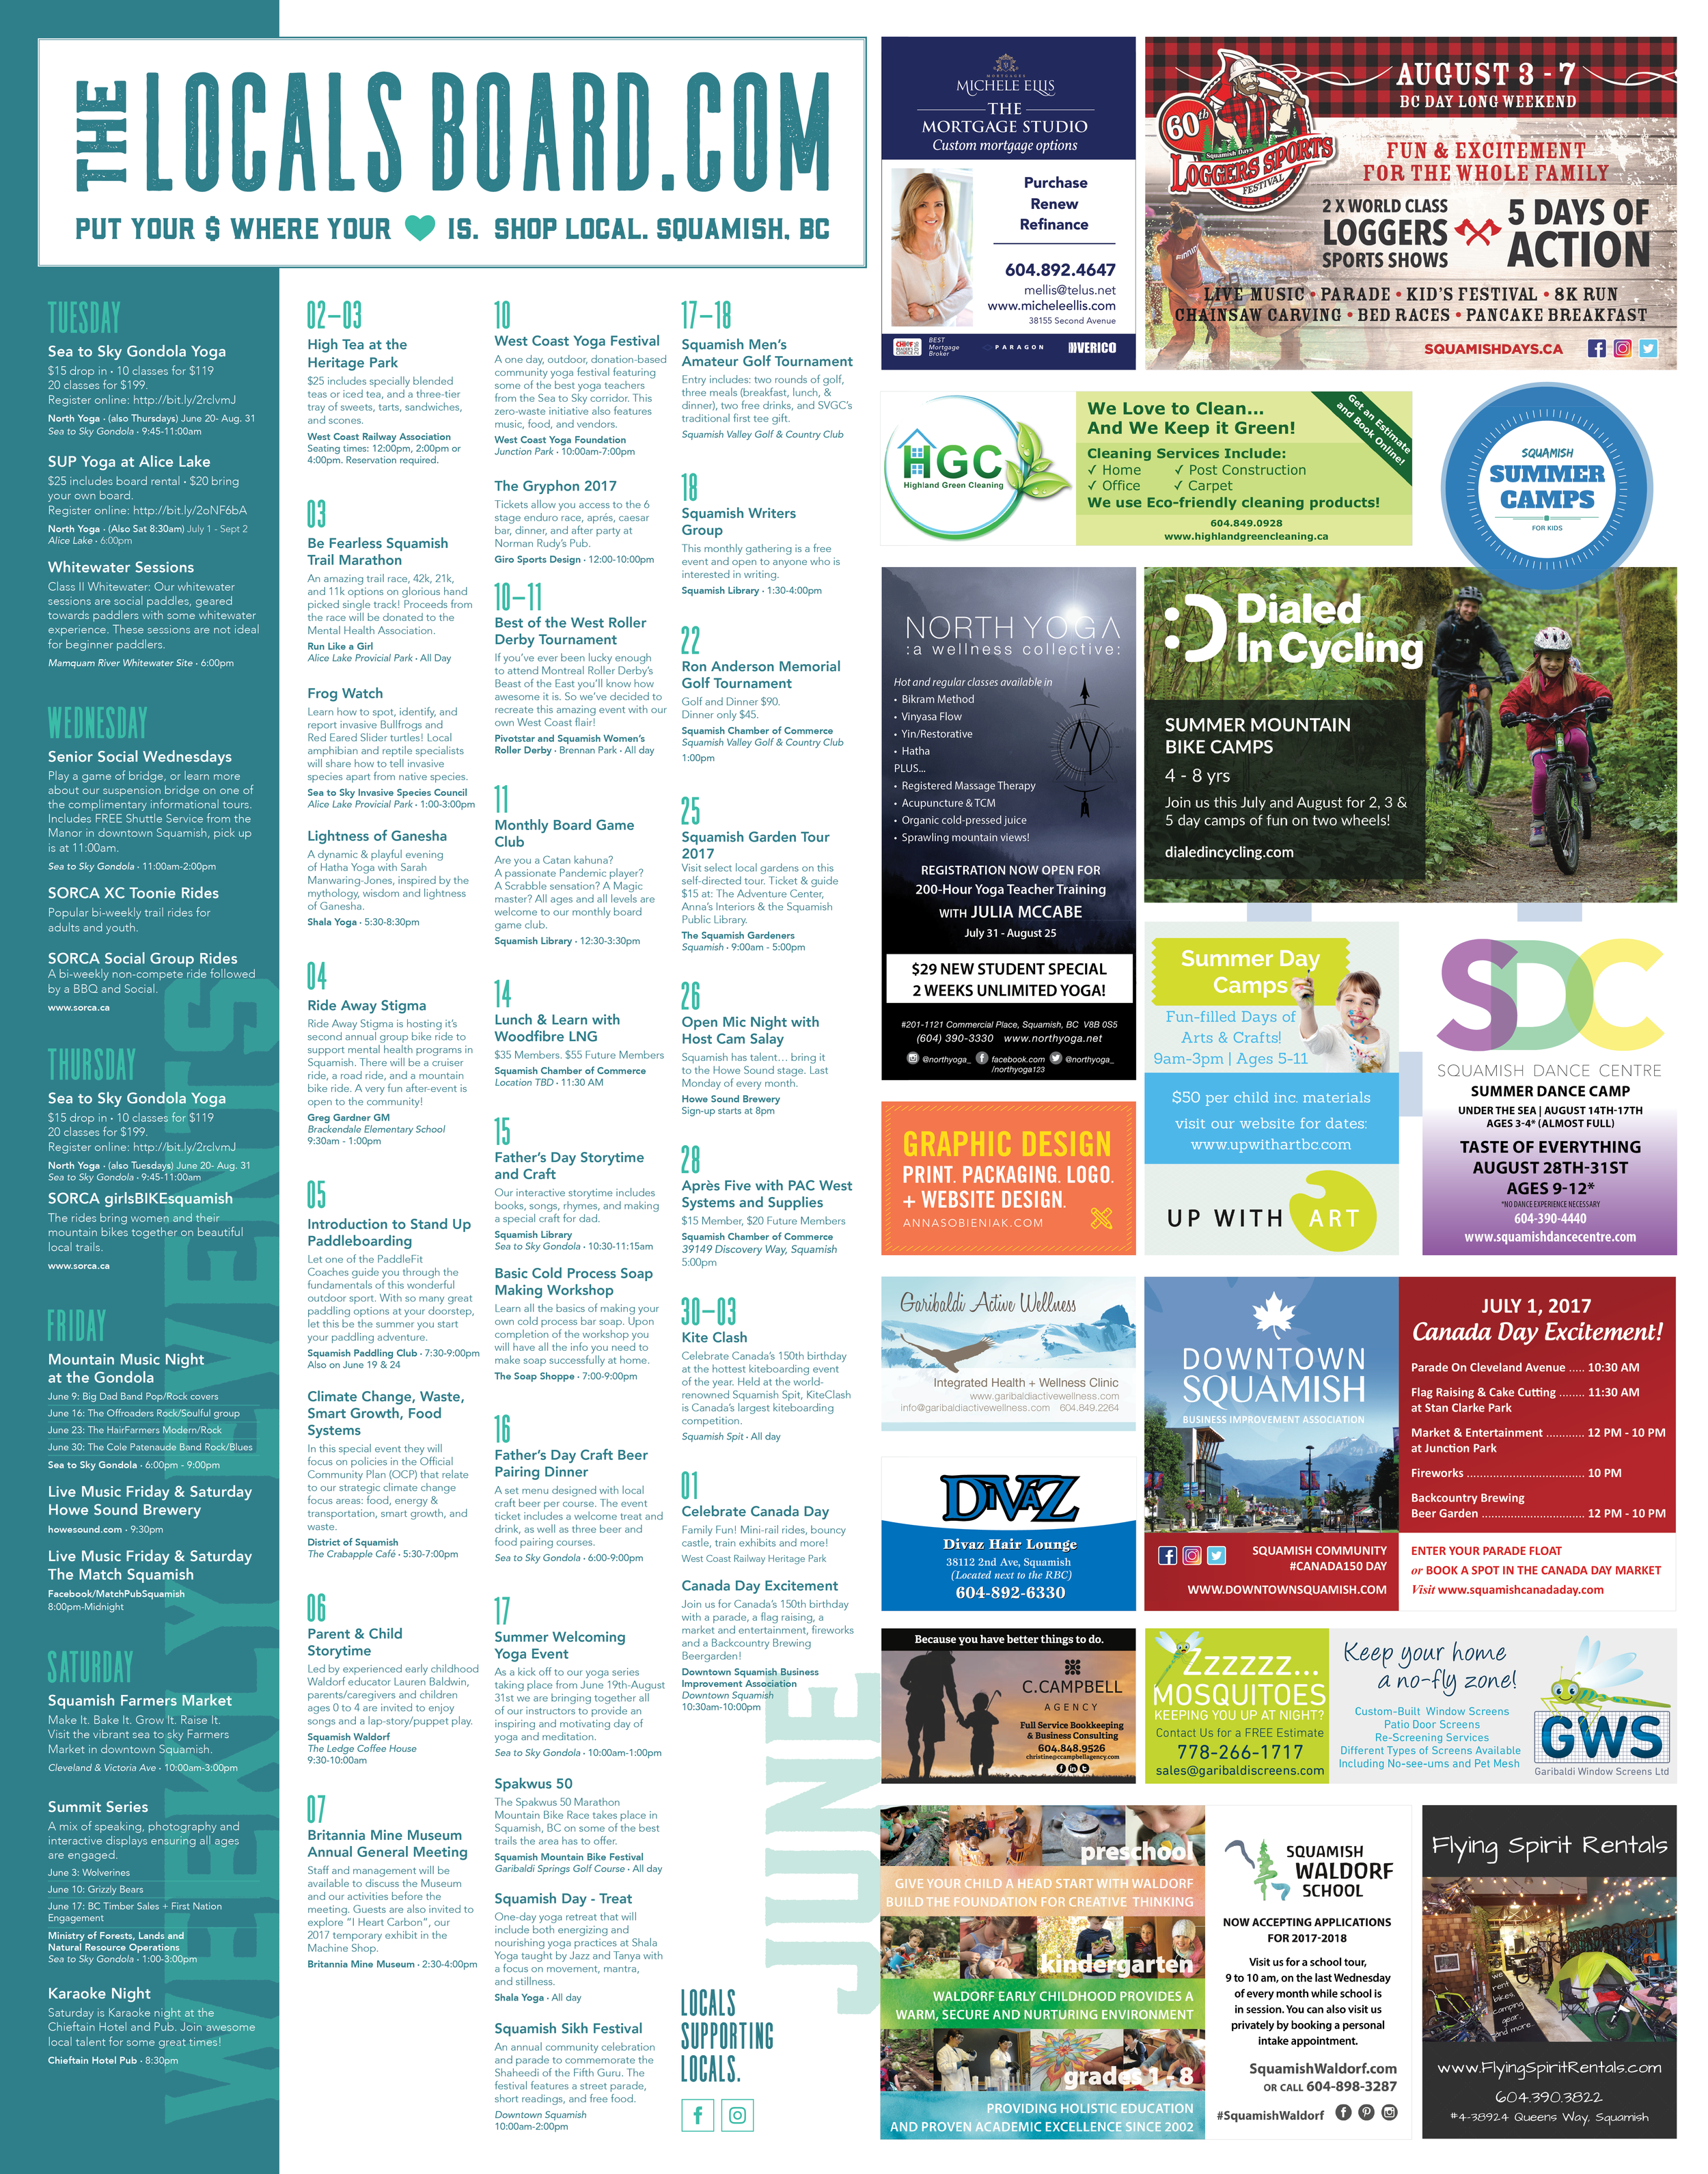 Our June Poster Board. Check out all the amazing local events and businesses who are show cased on this poster.